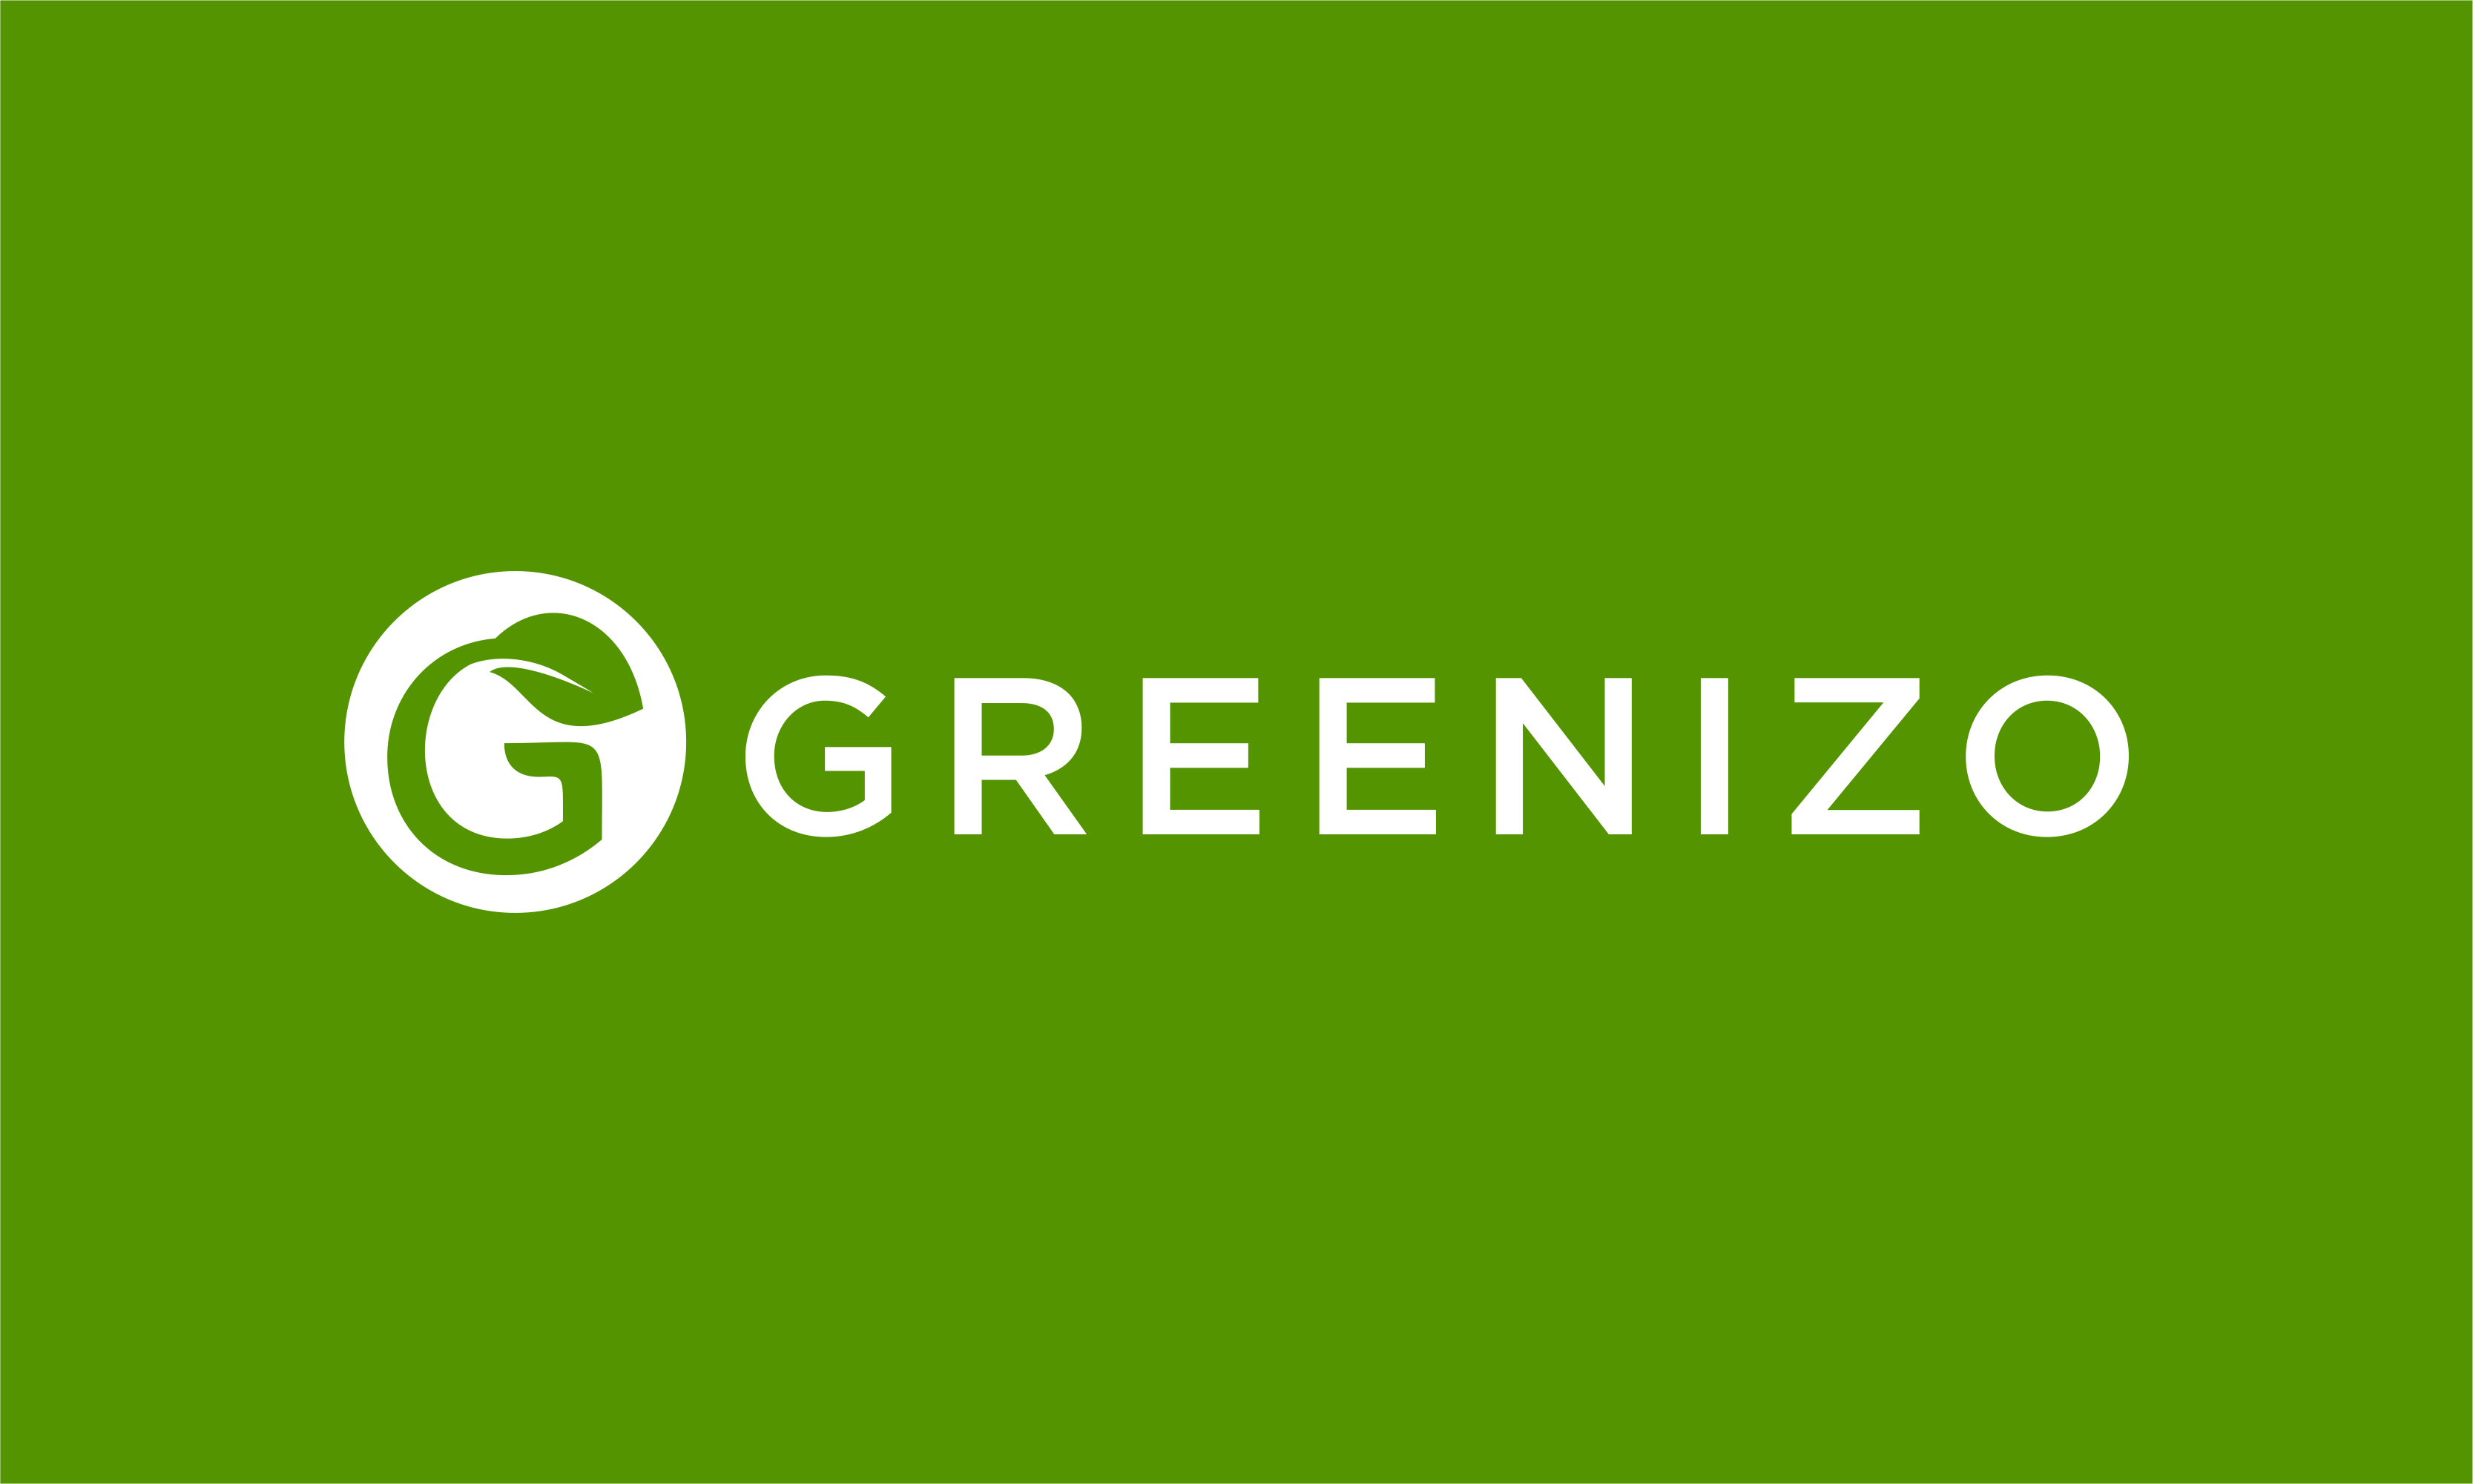 Greenizo - Agriculture business name for sale